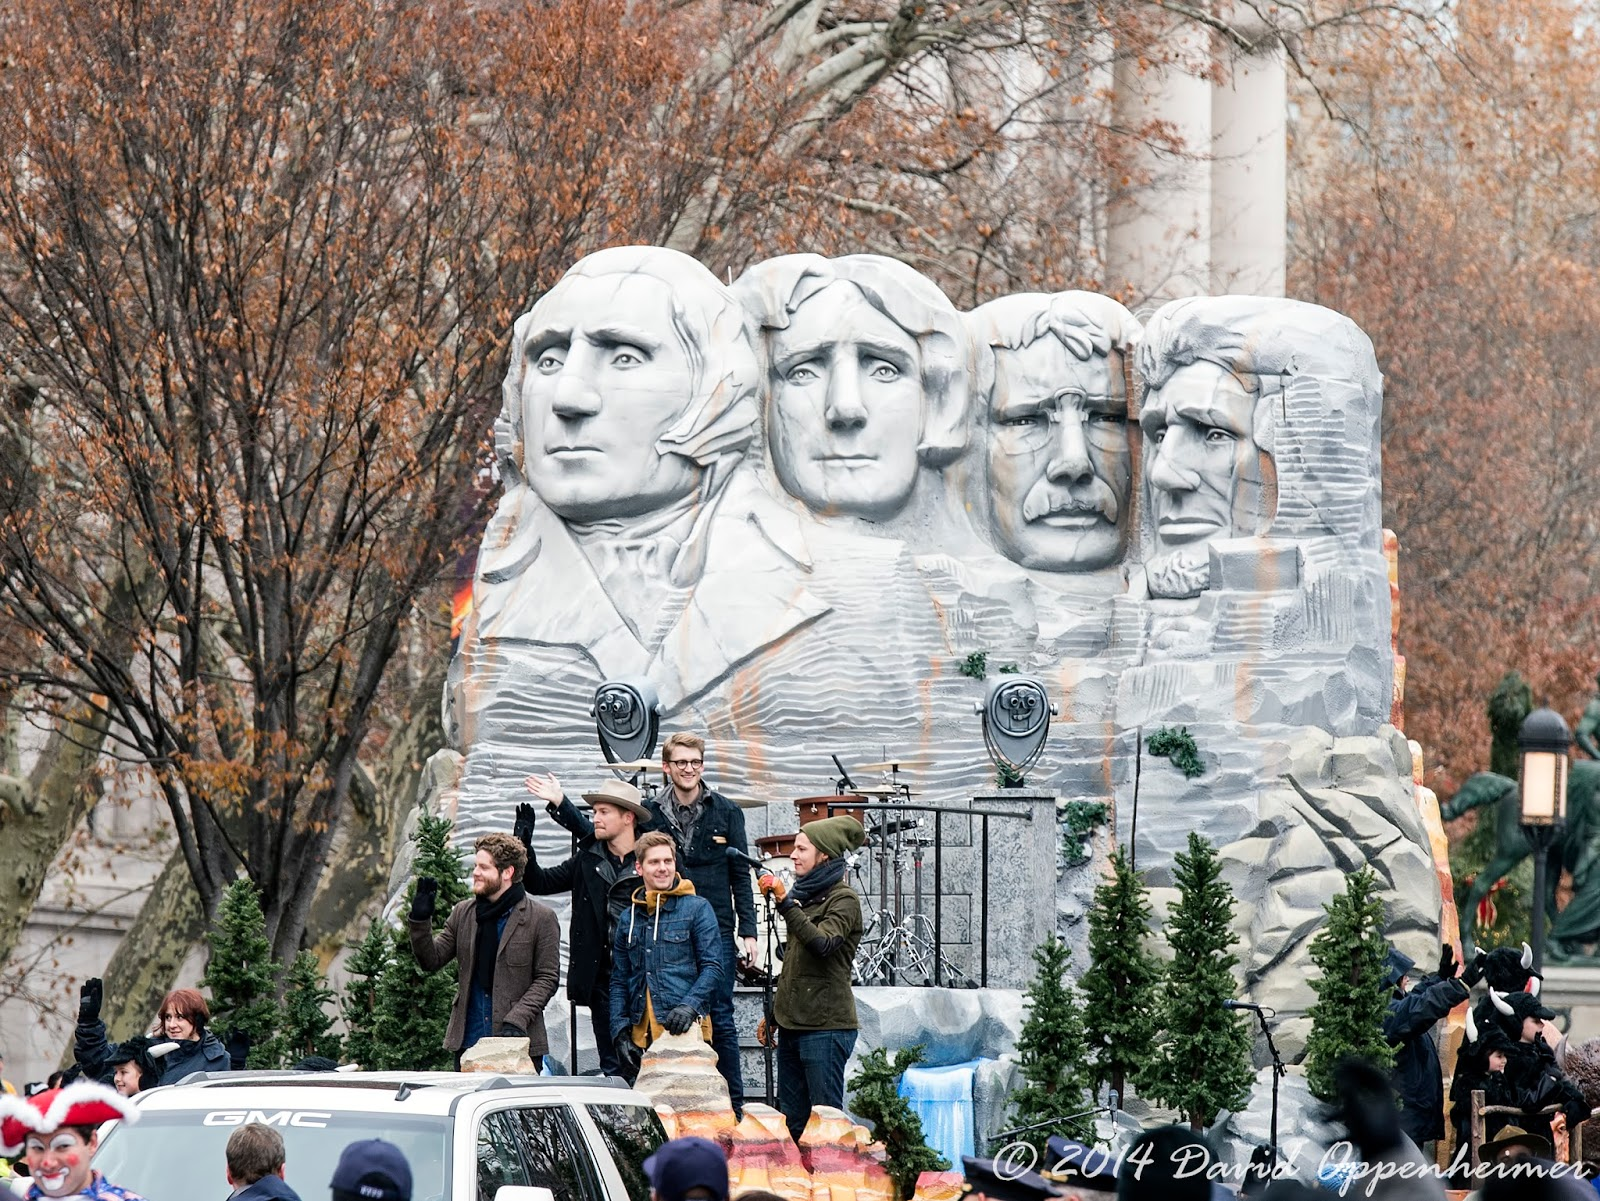 Mount Rushmore's American Pride by South Dakota Dept. of Tourism